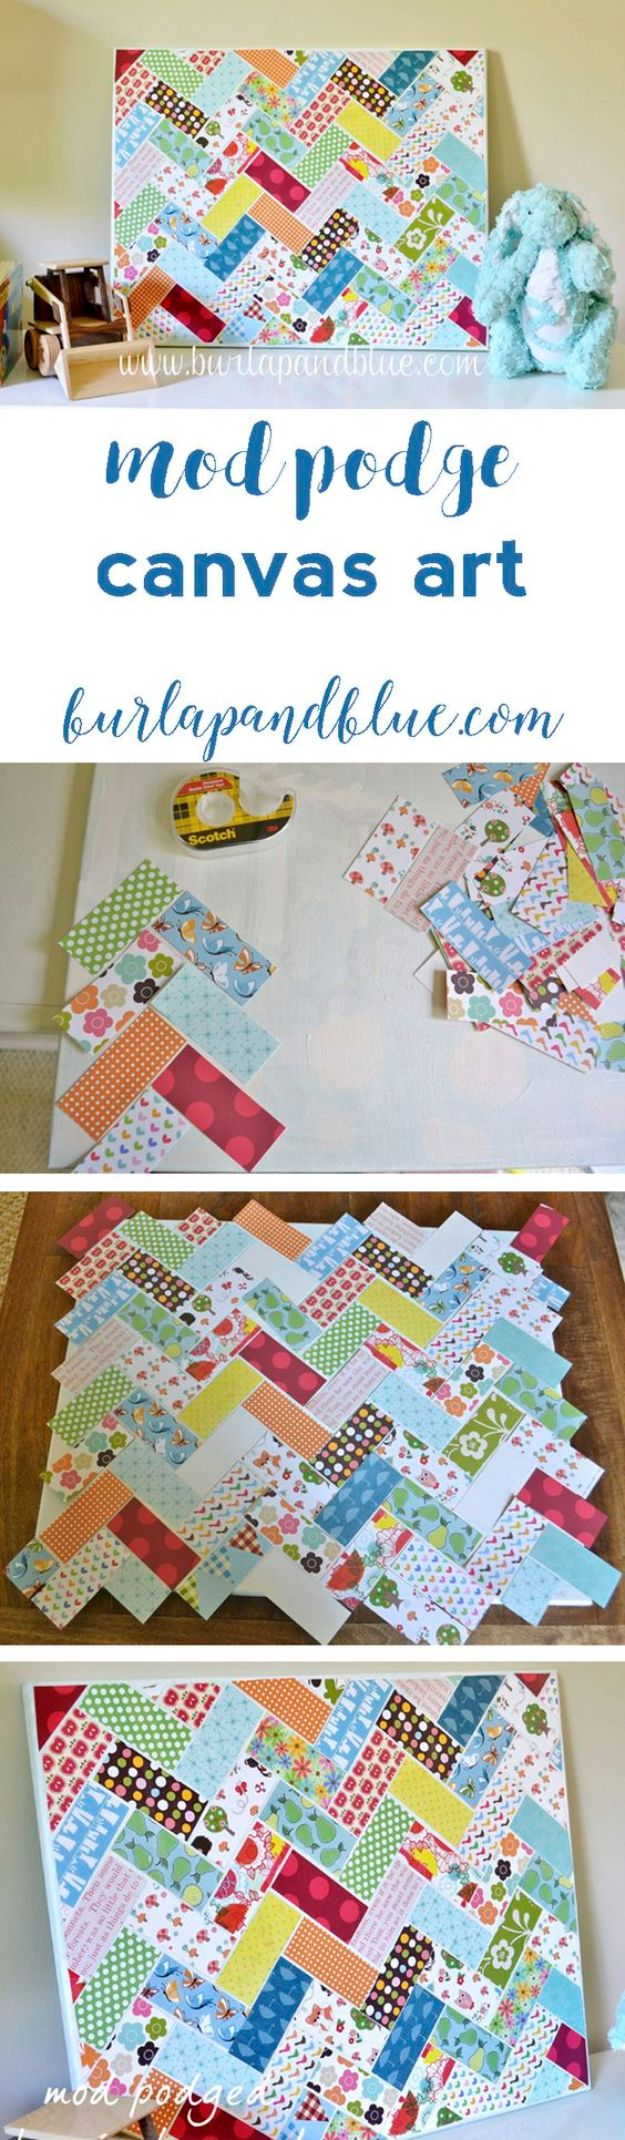 Best Quilting and Fabric Scraps Projects - Herringbone Wall Art - Easy Ideas for Making DIY Home Decor, Homemade Gifts, Wall Art , Kitchen Accessories, Clothes and Fashion from Leftover Fabric Scrap and Quilt Pieces - Cute Do It Yourself Ideas for Birthday, Christmas, Baby and Friends #crafts #quilting #sewing